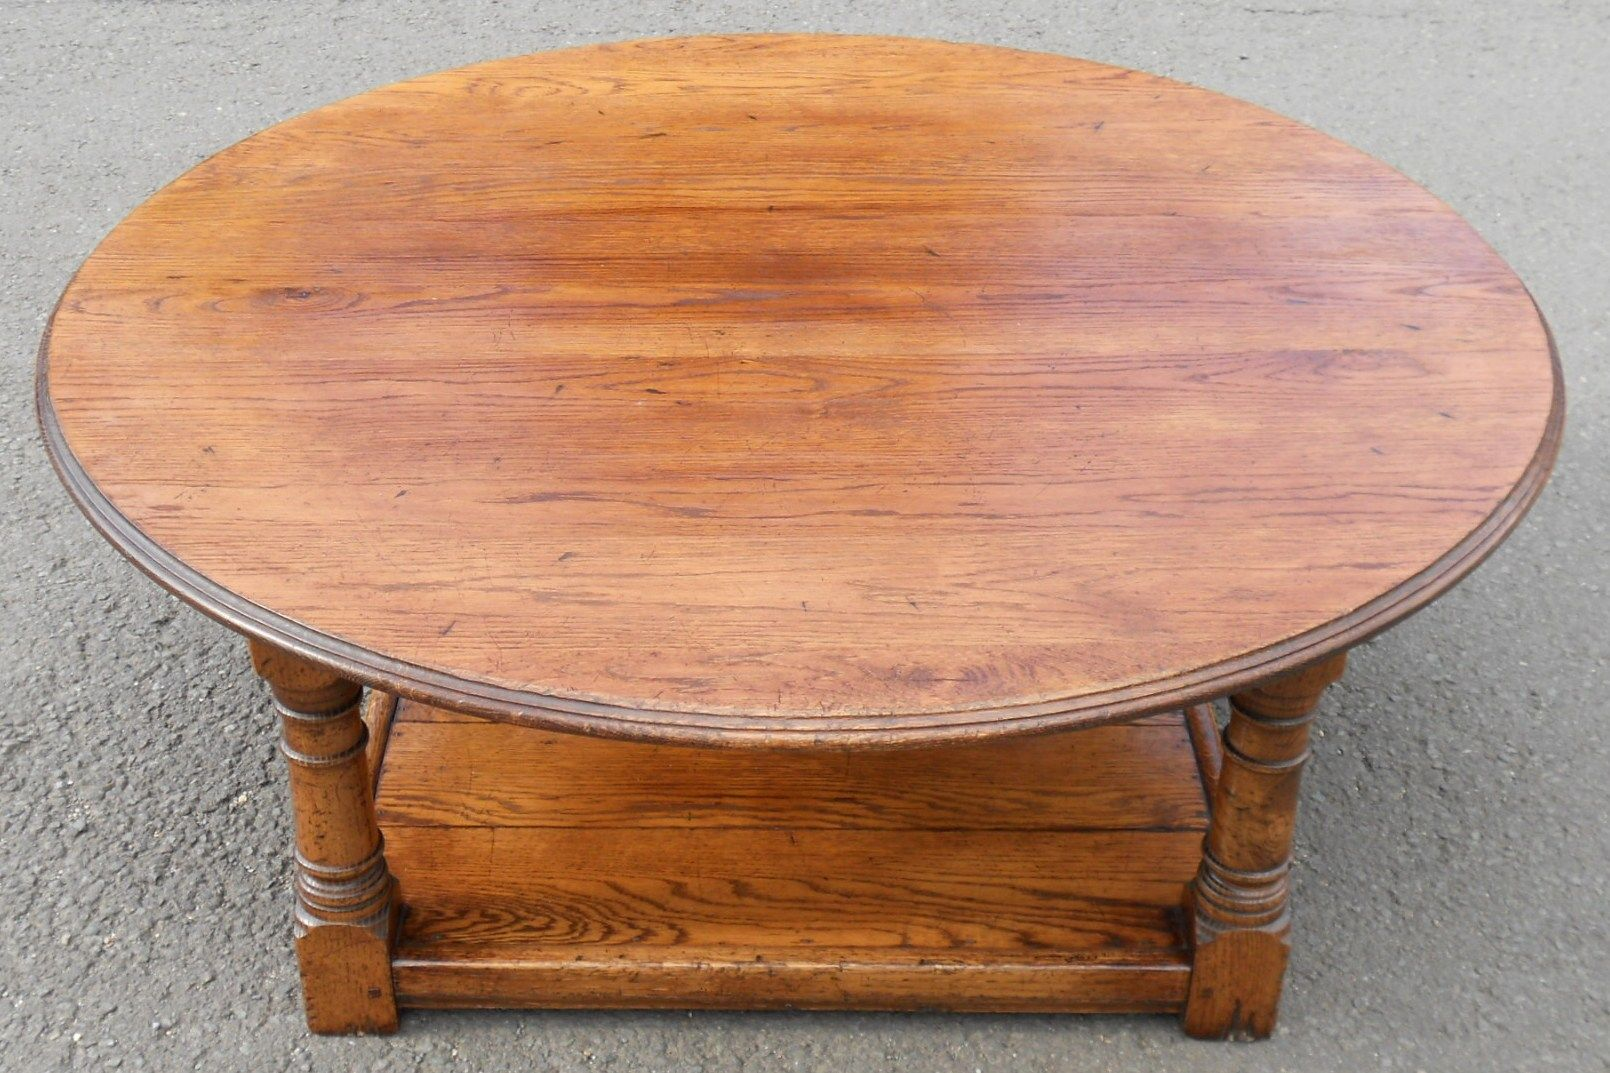 Large Round Oak Coffee Table Mondo Large Round Coffee Table Large Midcentury Round Coffee Table (View 8 of 10)